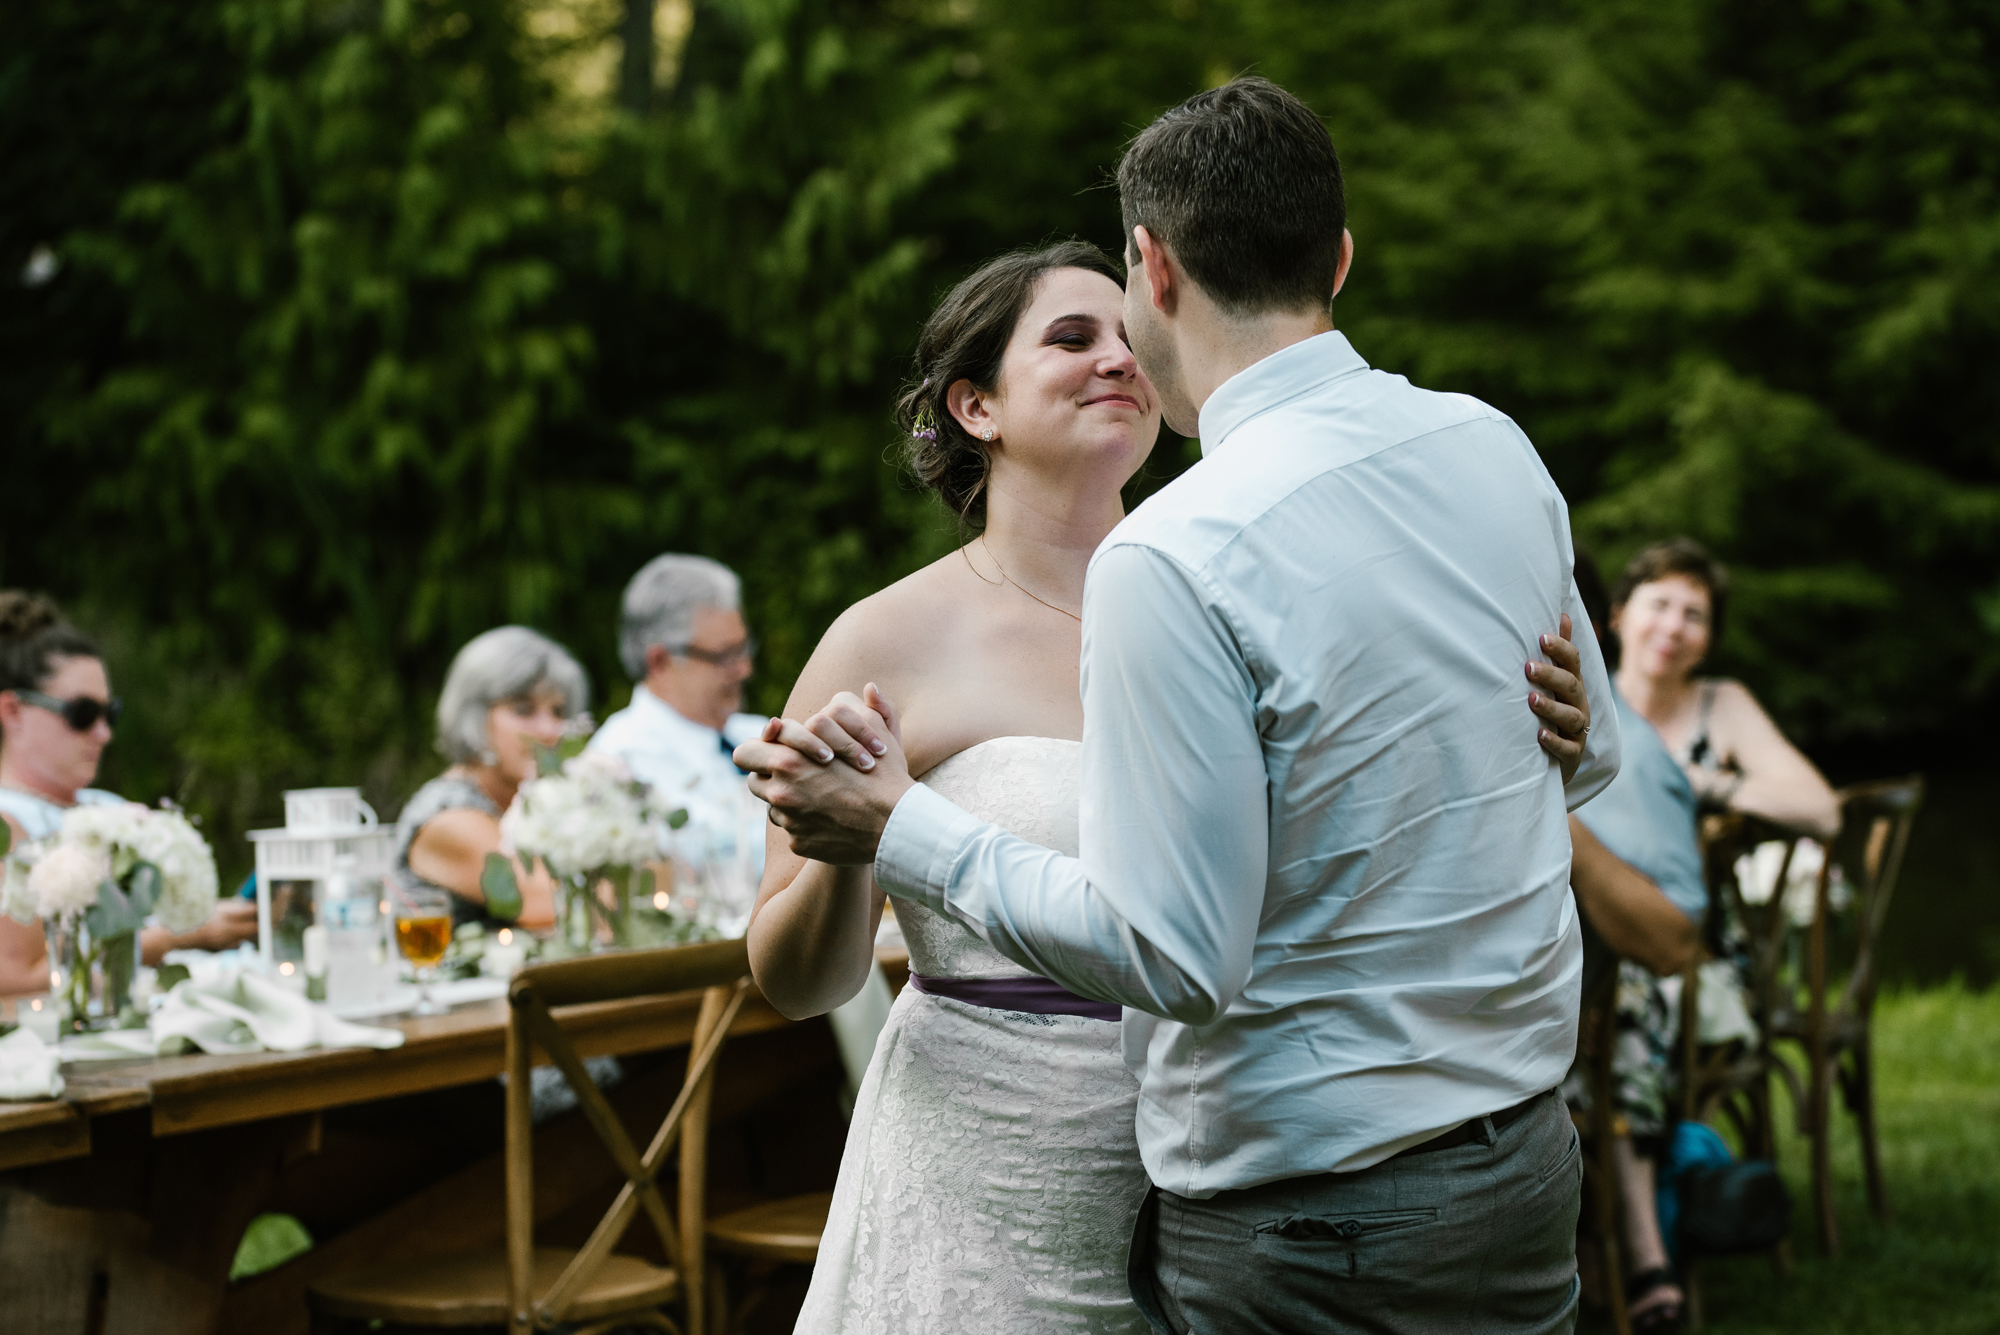 sawyer-michigan-backyard-wedding-dancing-pictures-sydney-marie (3).jpg